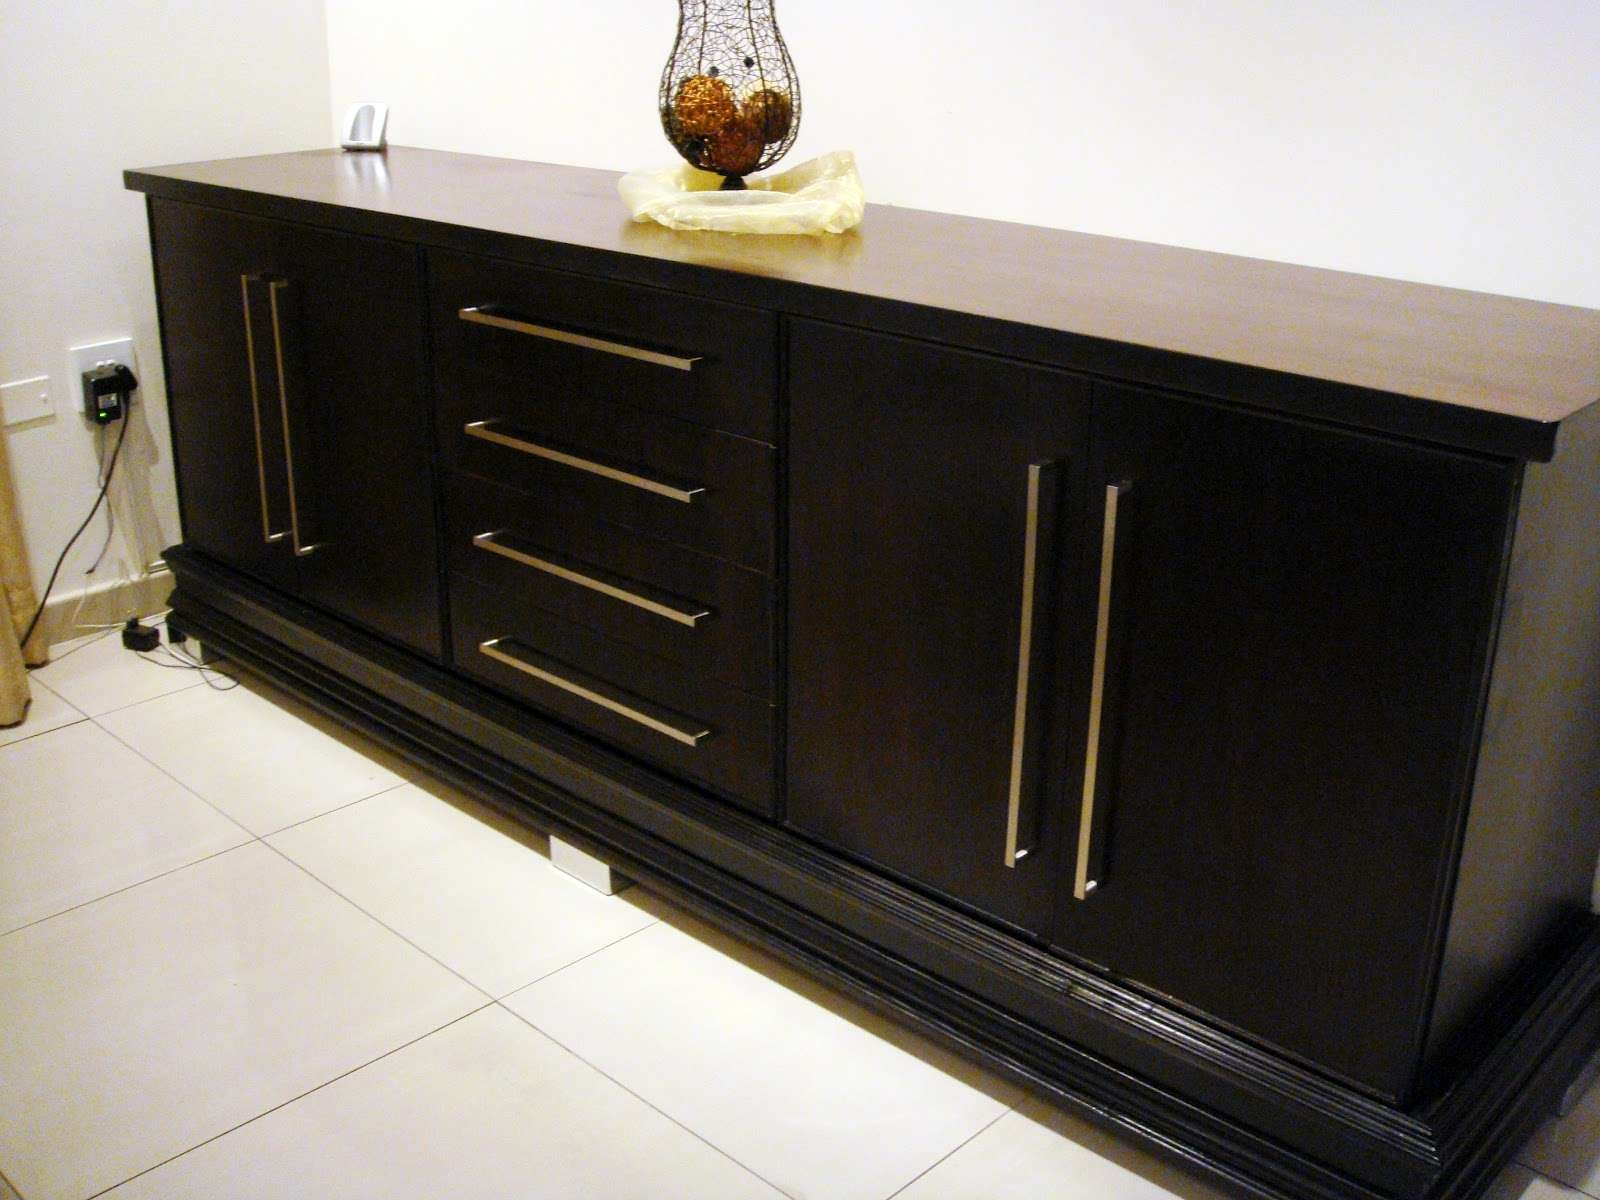 Dining Room Bar Sideboard | Latest Home Decor And Design In Black Dining Room Sideboards (View 8 of 20)